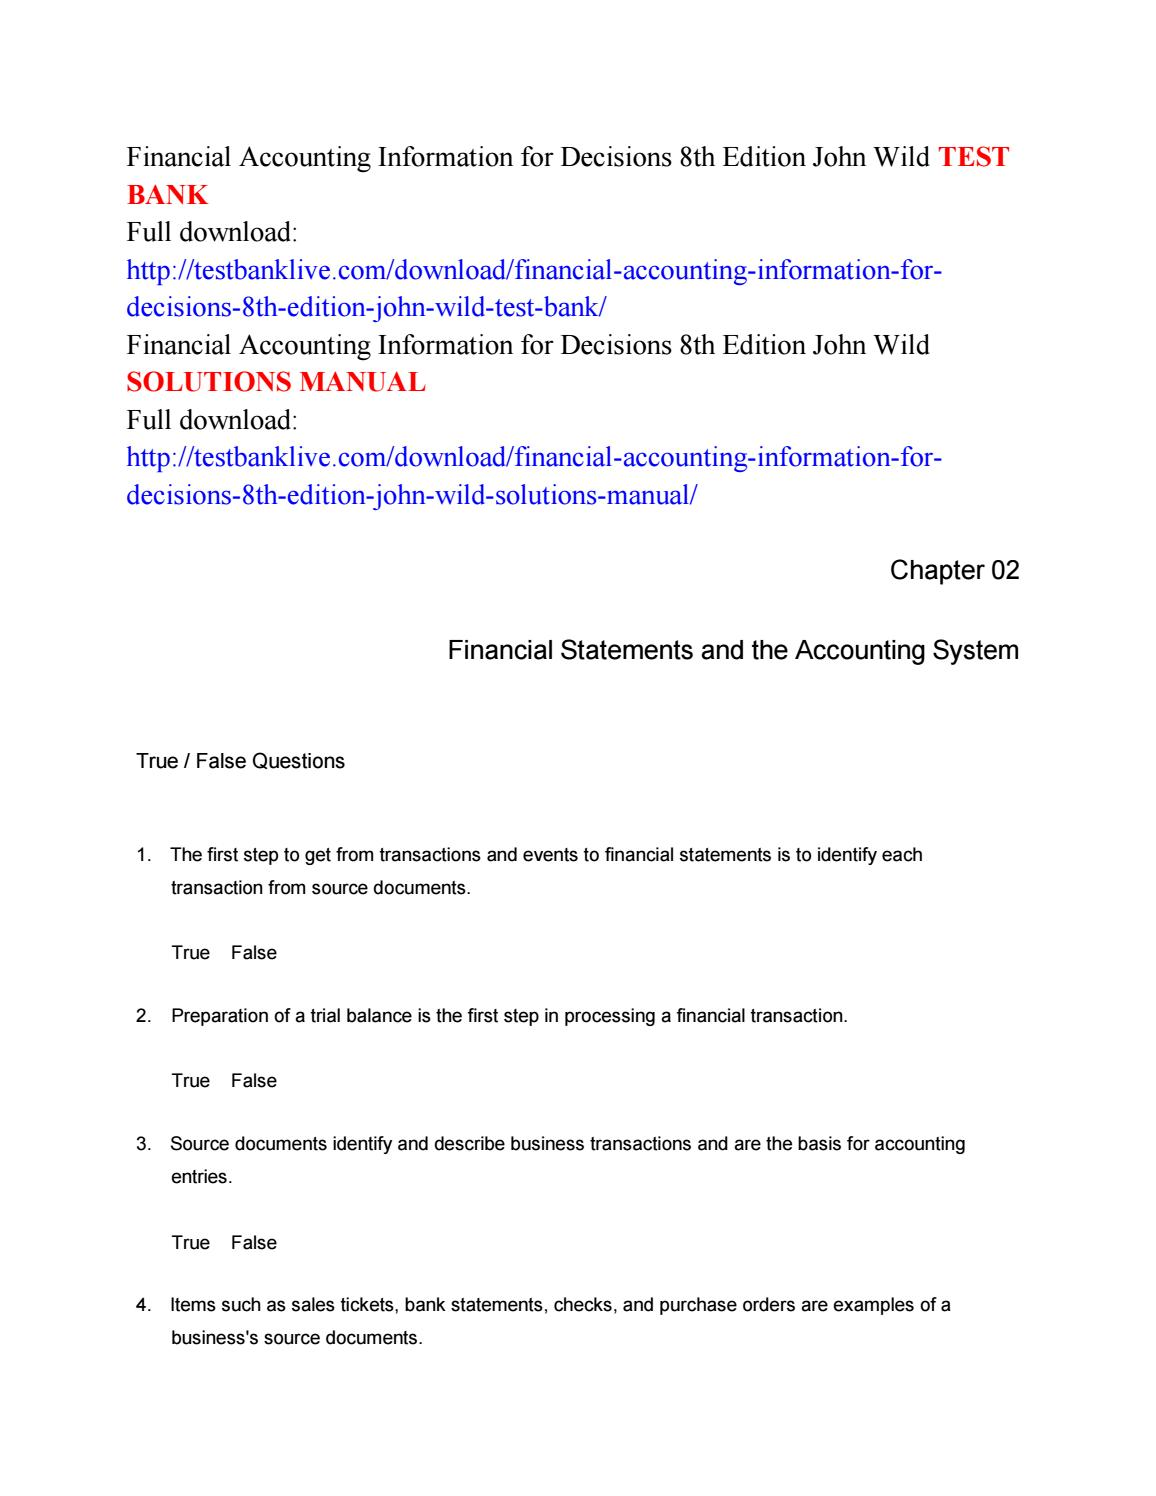 Financial accounting information for decisions 8th edition john wild test  bank by Wild444 - issuu